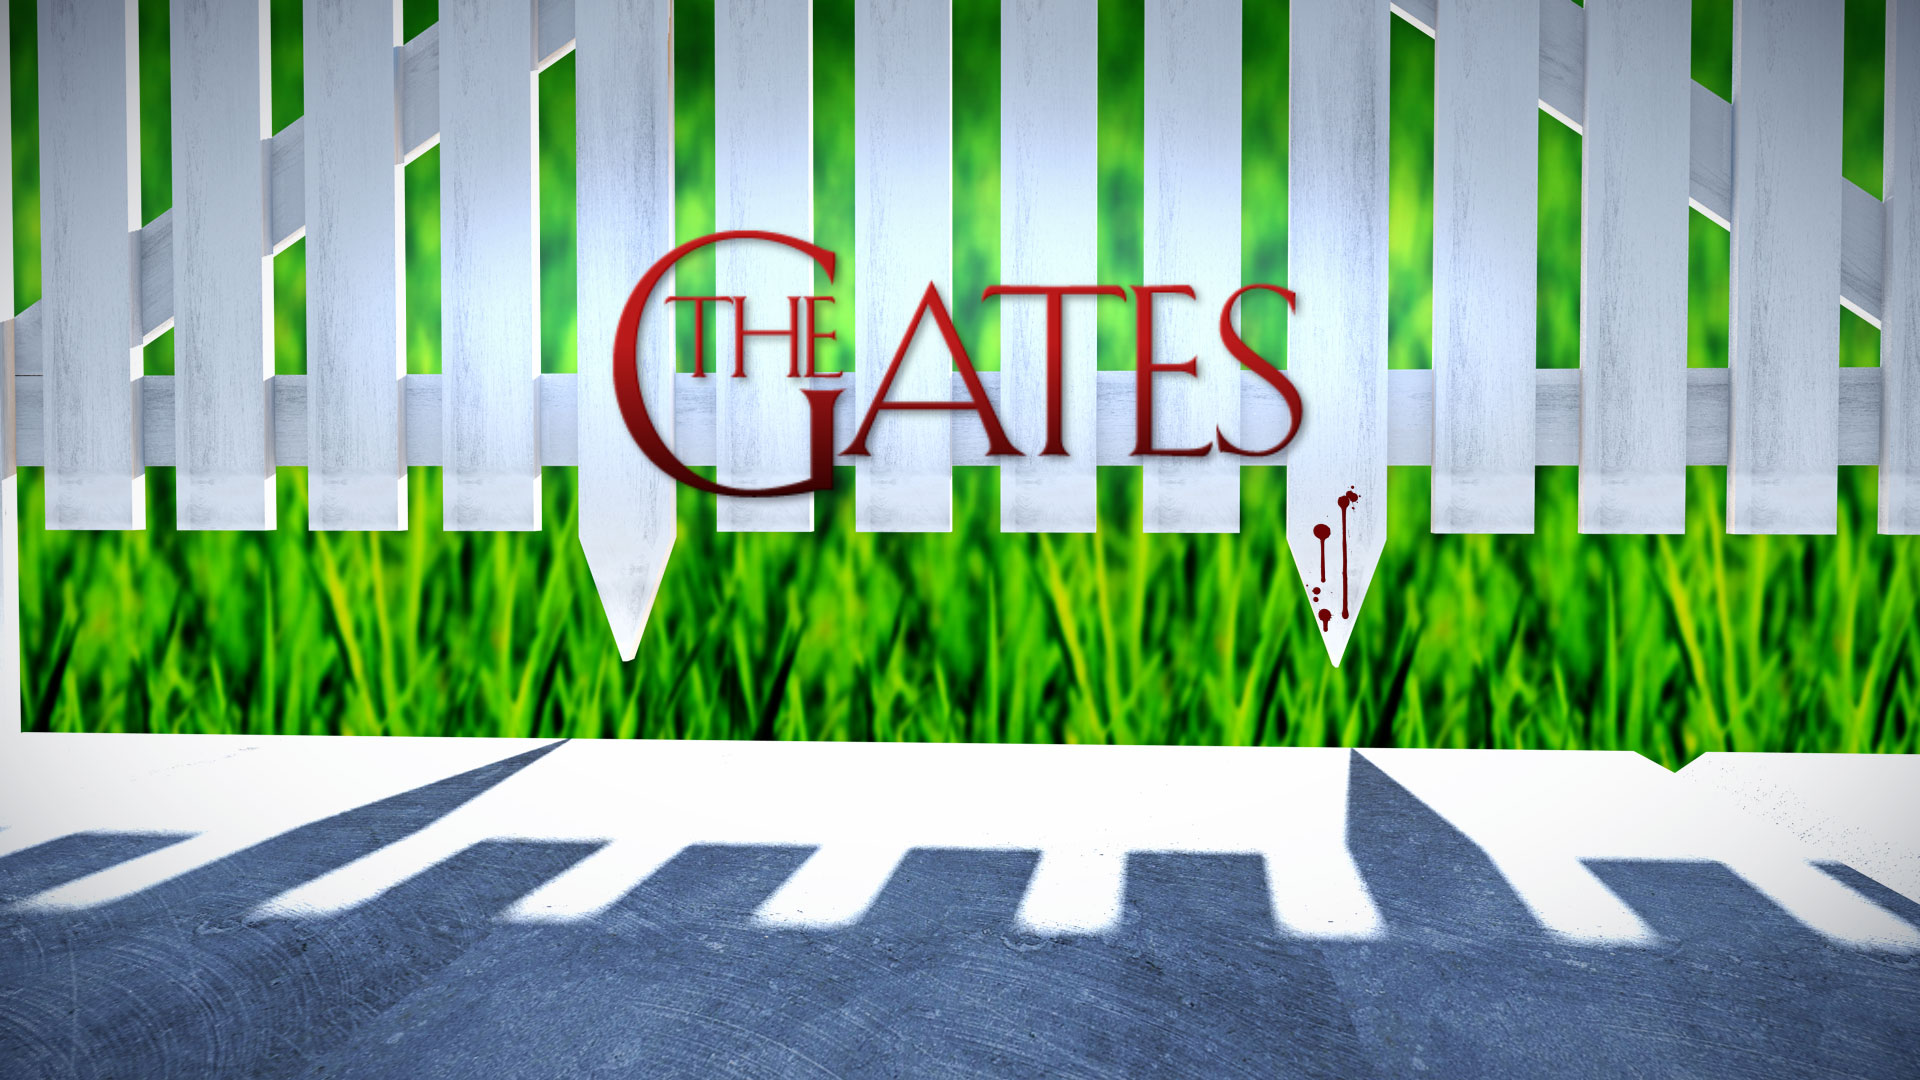 GATES_Logo02_PicketFence_mm_v5+(0.00.01.00).jpg